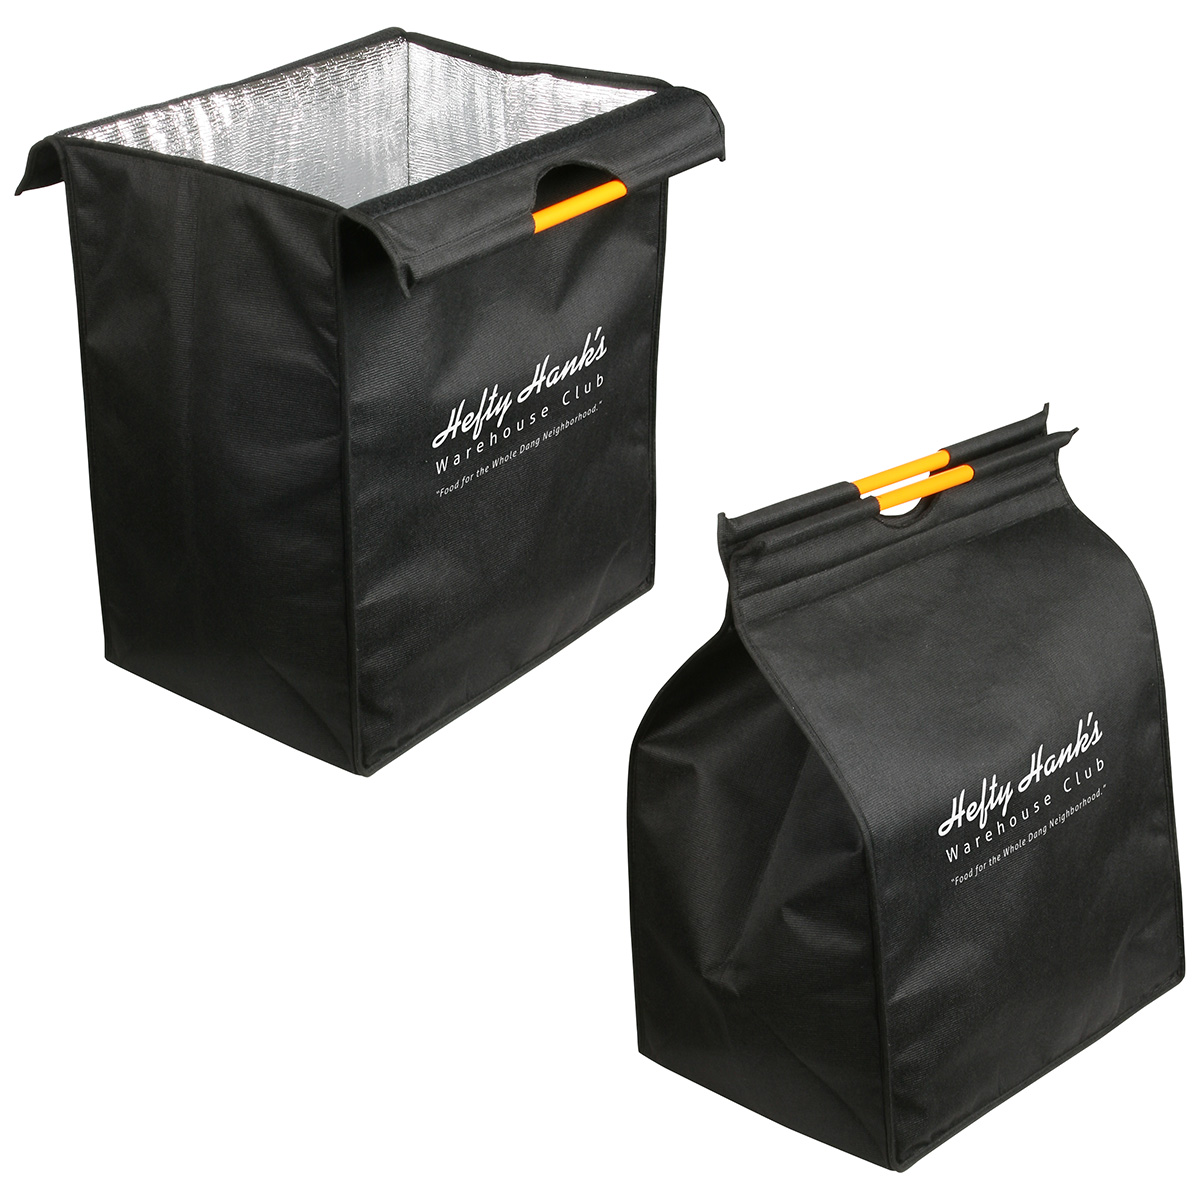 XL Insulated Recycled P.E.T. Shopping Bag, WBA-XR10, 1 Colour Imprint